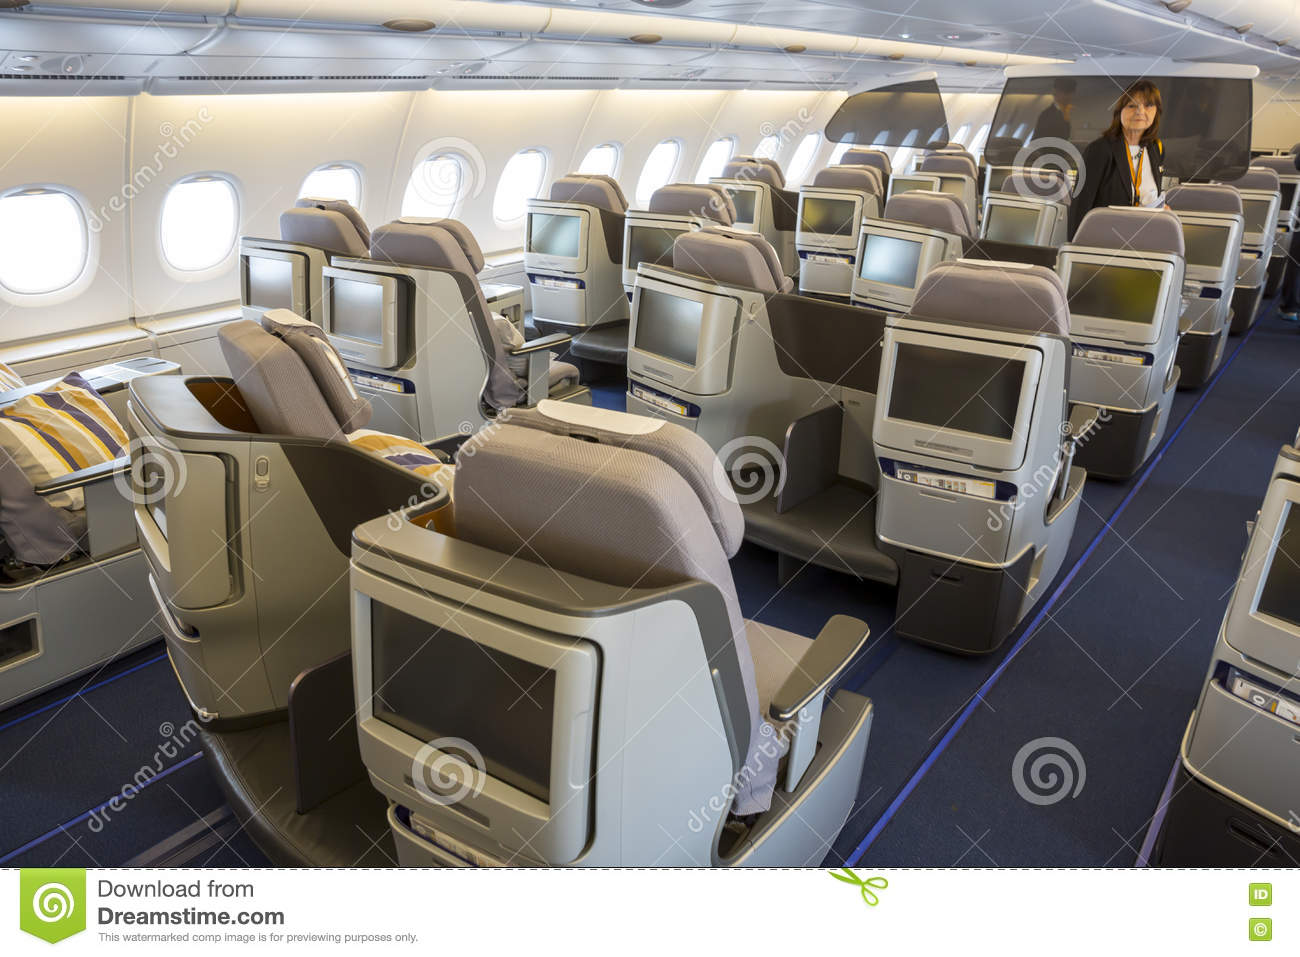 Avion d 39 airbus a380 l 39 int rieur des si ges image stock for Interieur airbus a380